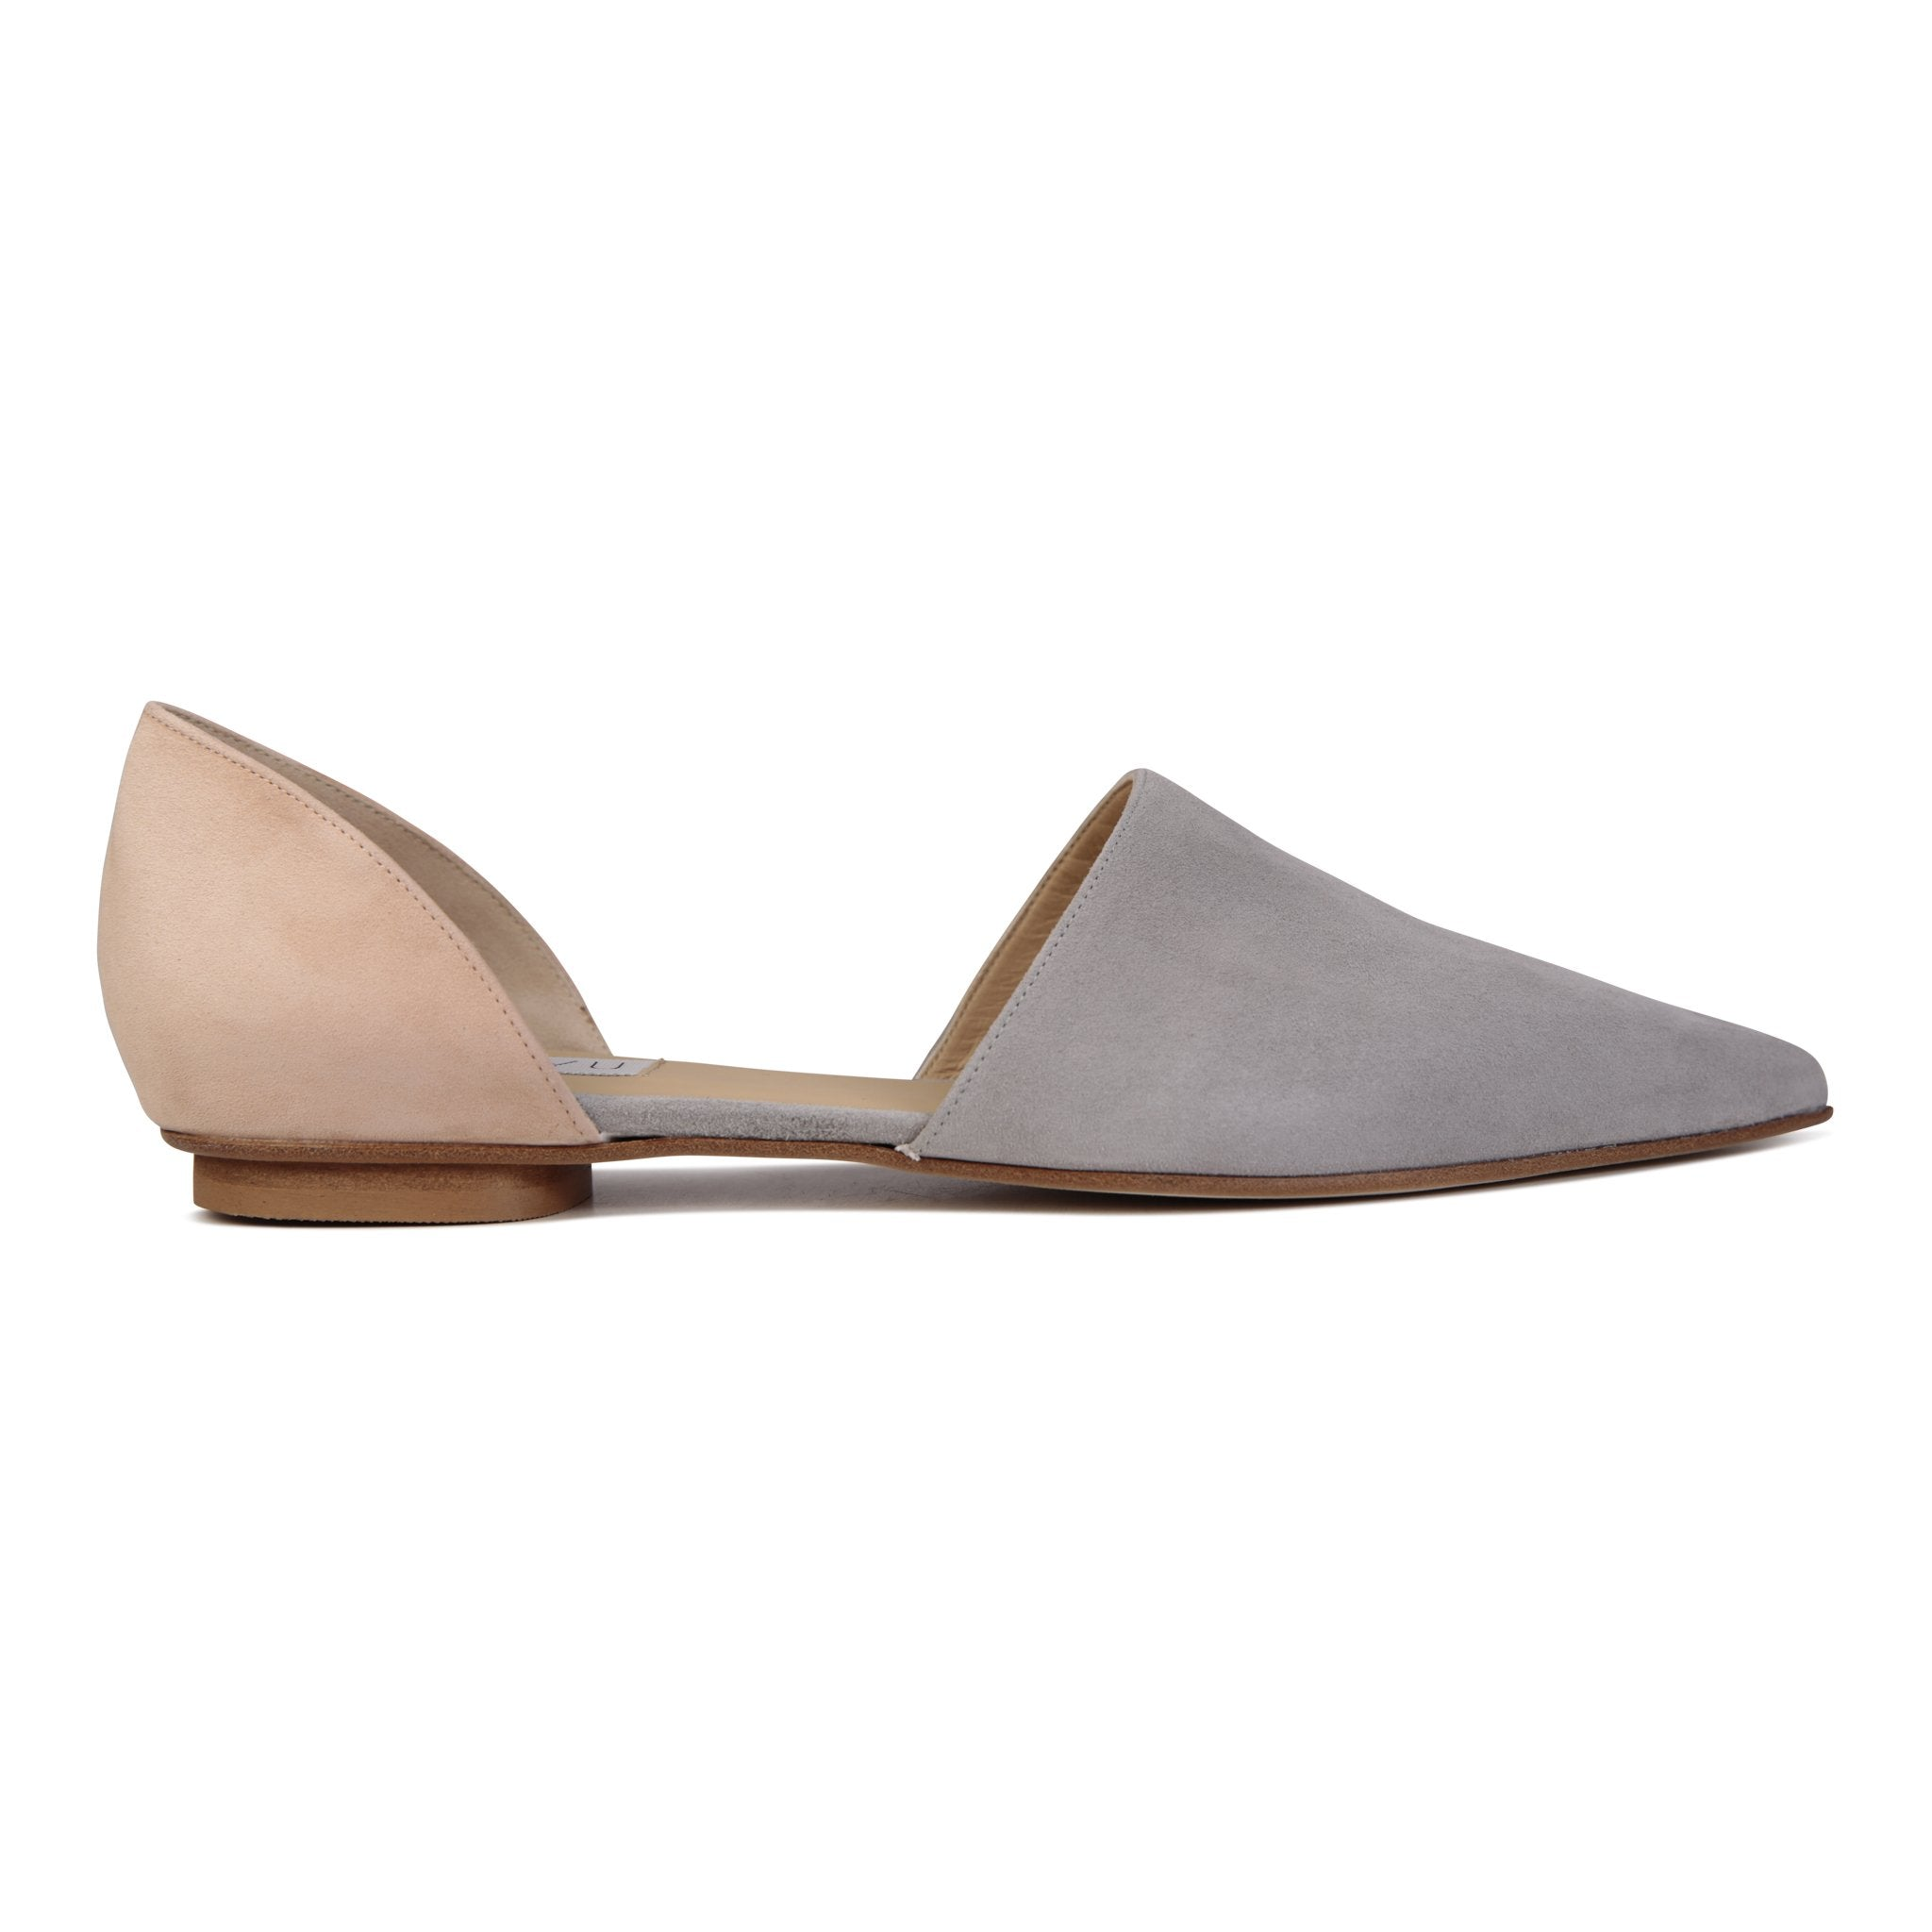 ELBA - Velukid Grigio + Sand, VIAJIYU - Women's Hand Made Sustainable Luxury Shoes. Made in Italy. Made to Order.